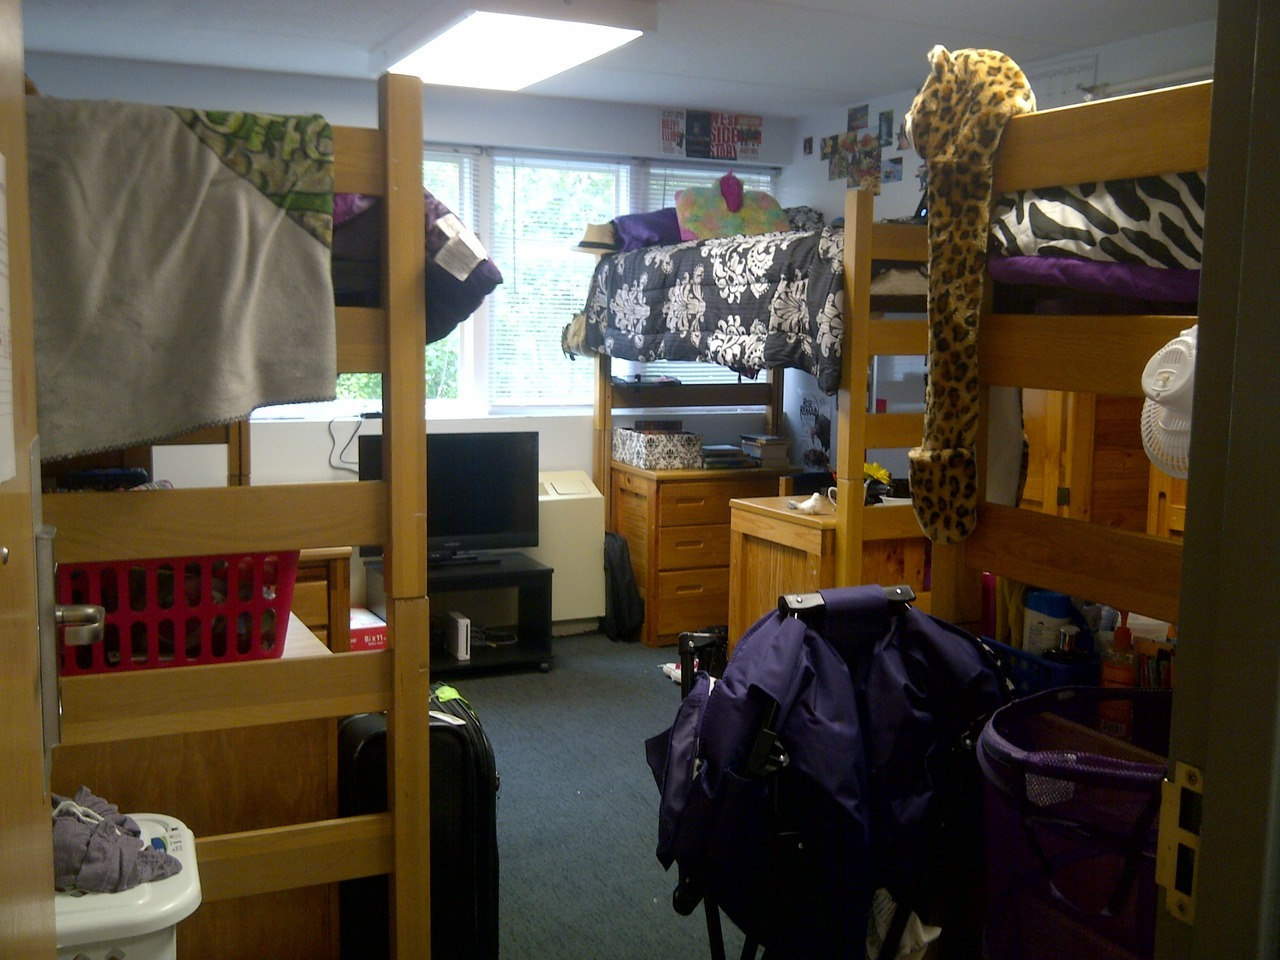 Sacred Heart University Dorm Rooms